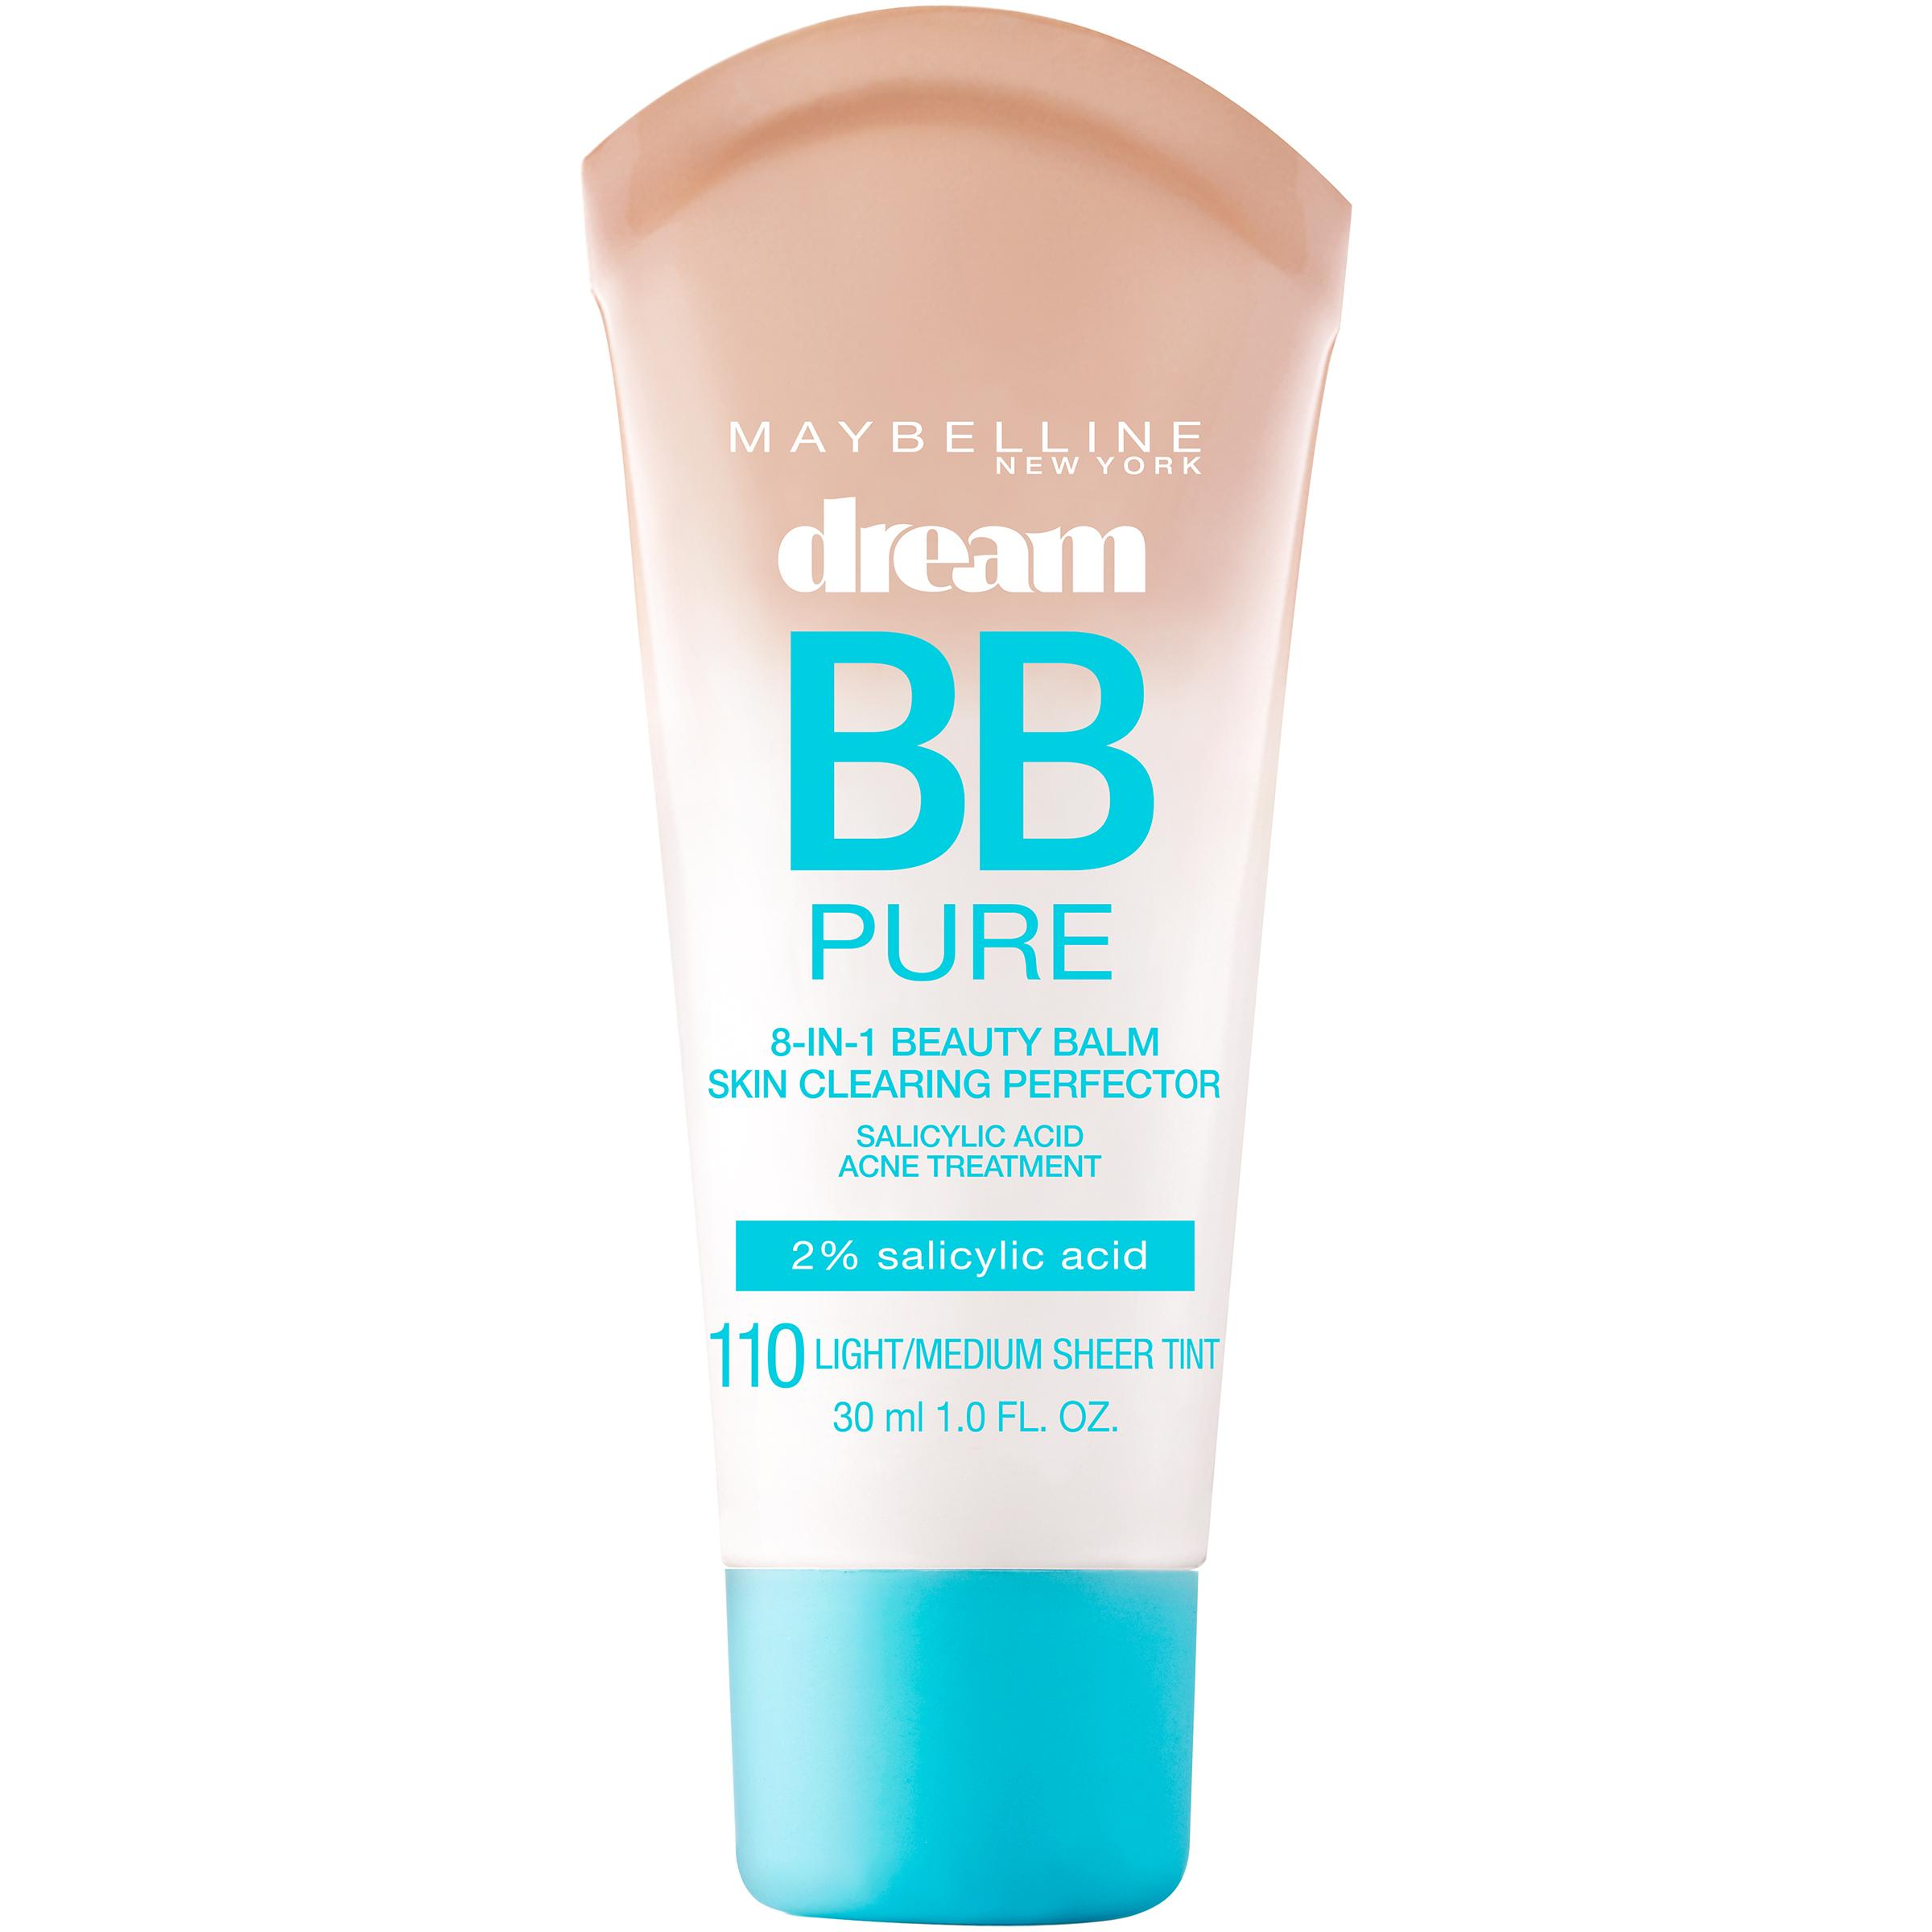 maybelline matte bb cream